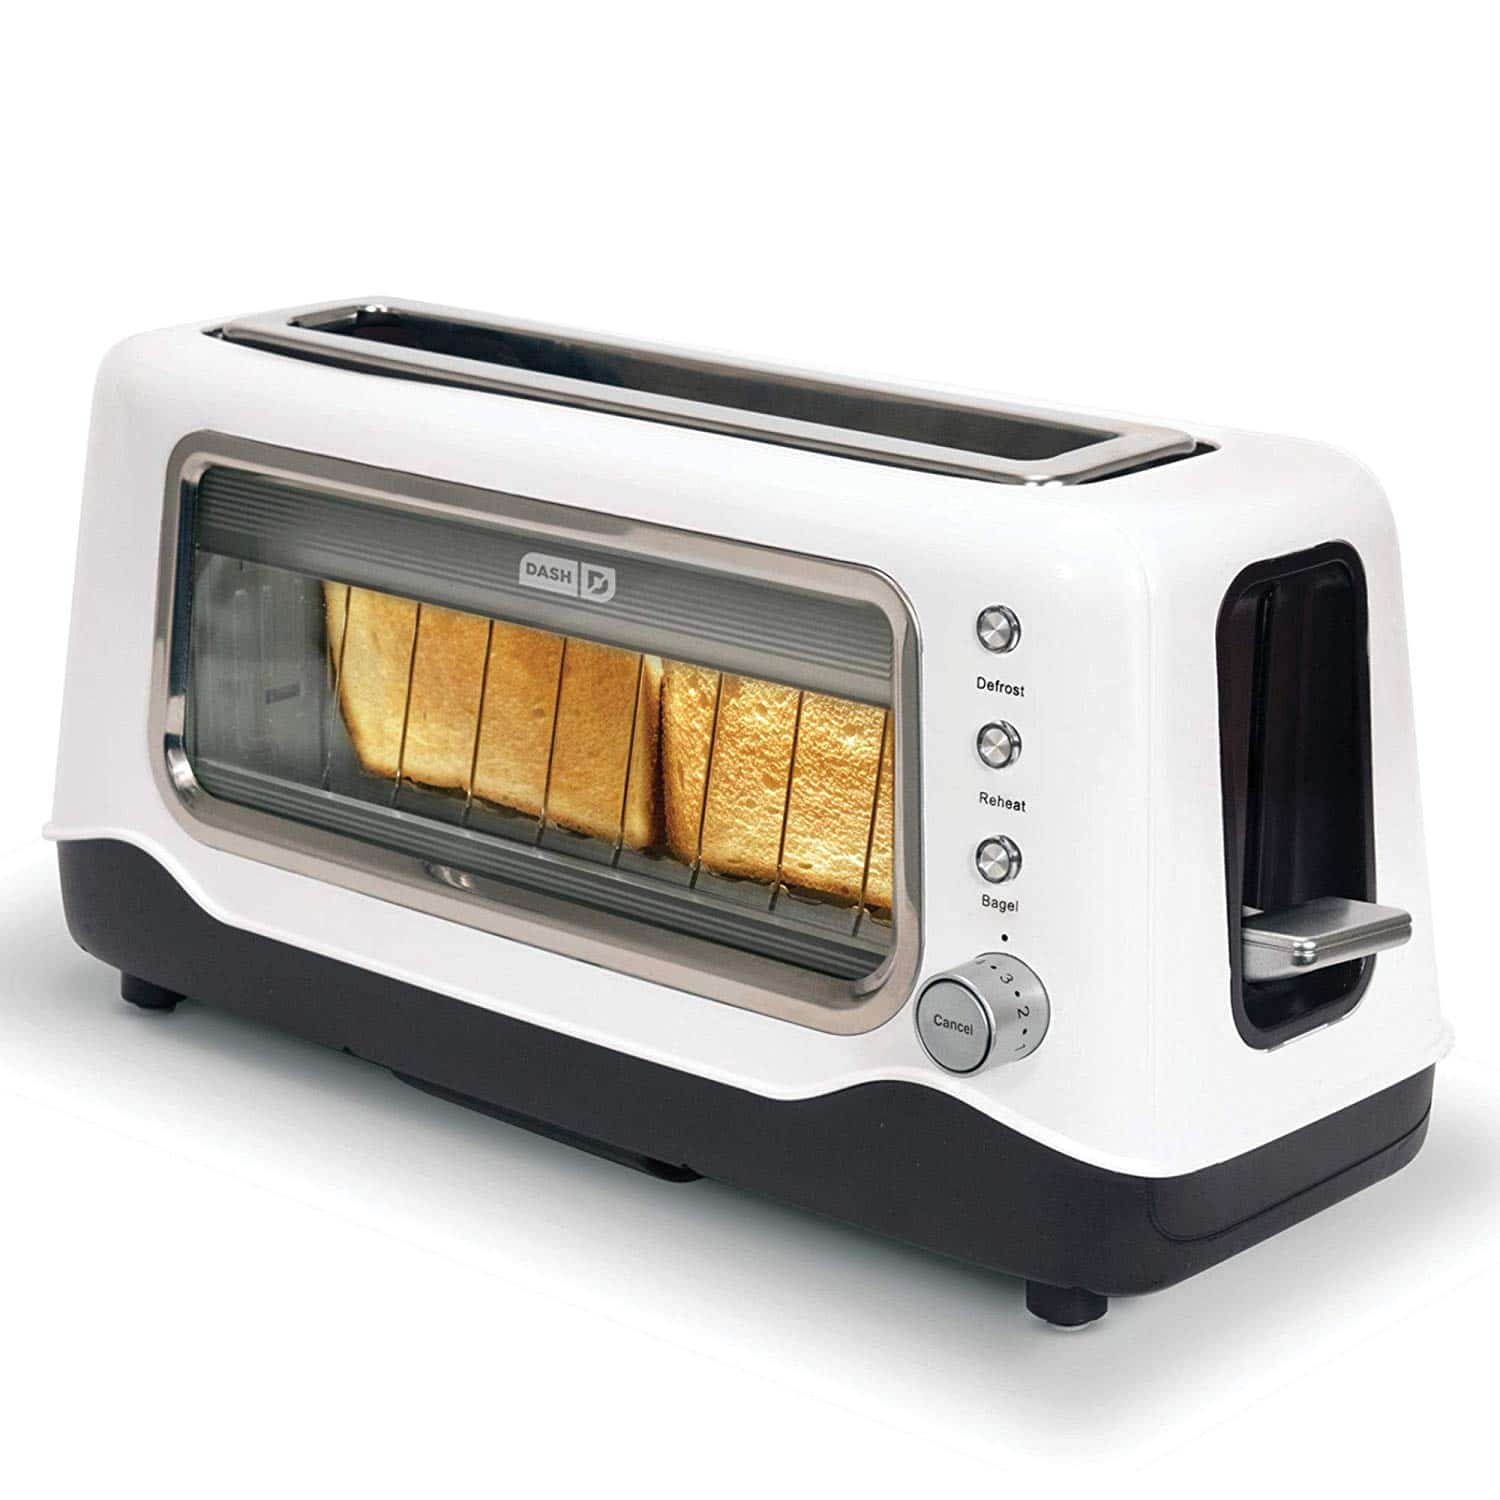 see through toaster that's easy to clean